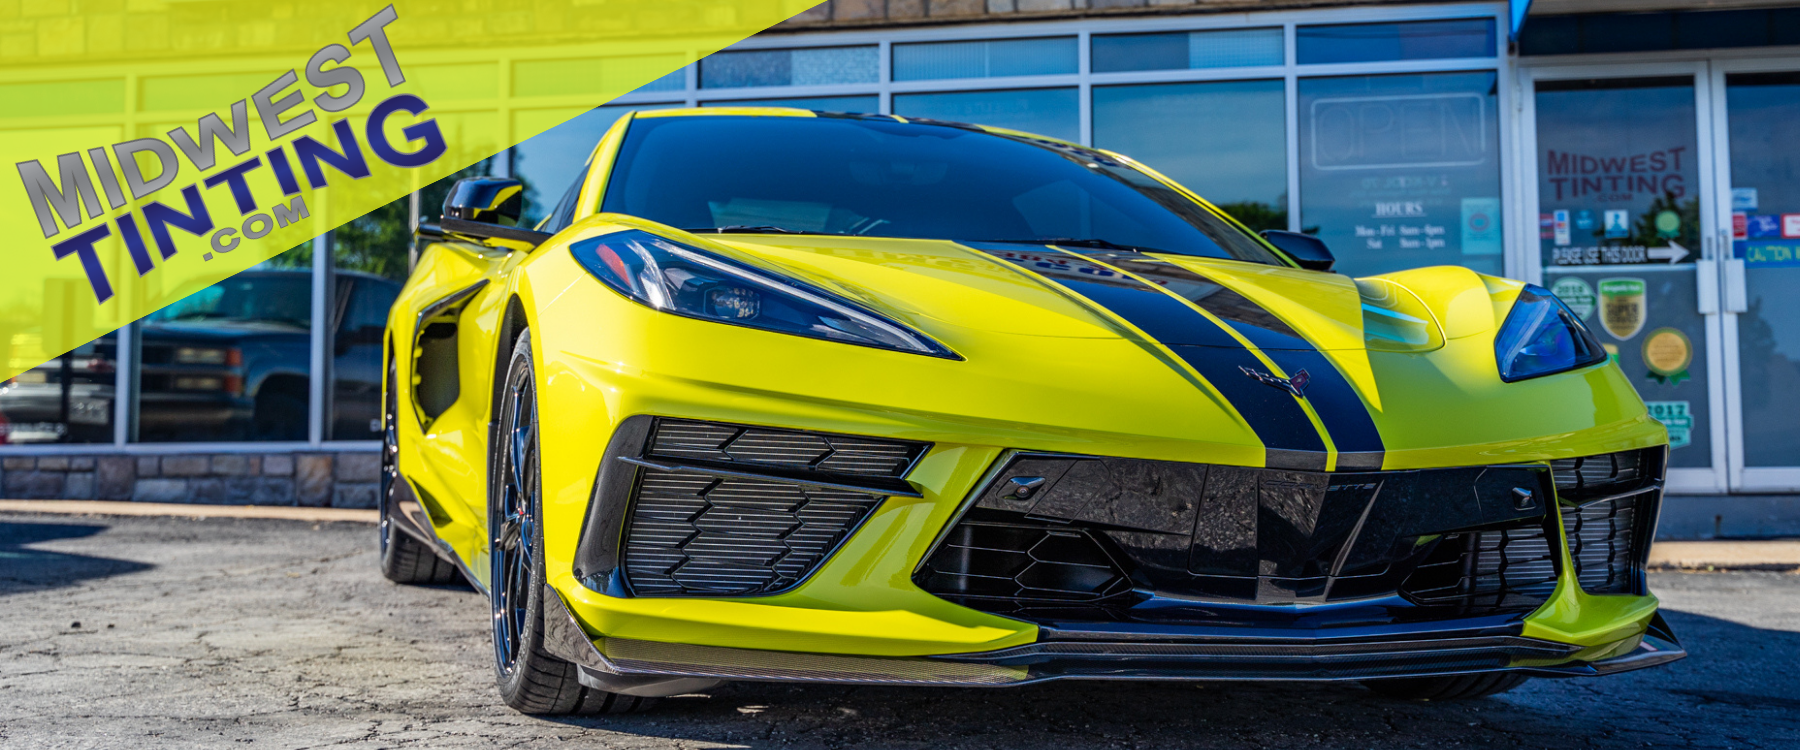 display of corvette after paint protection after completion